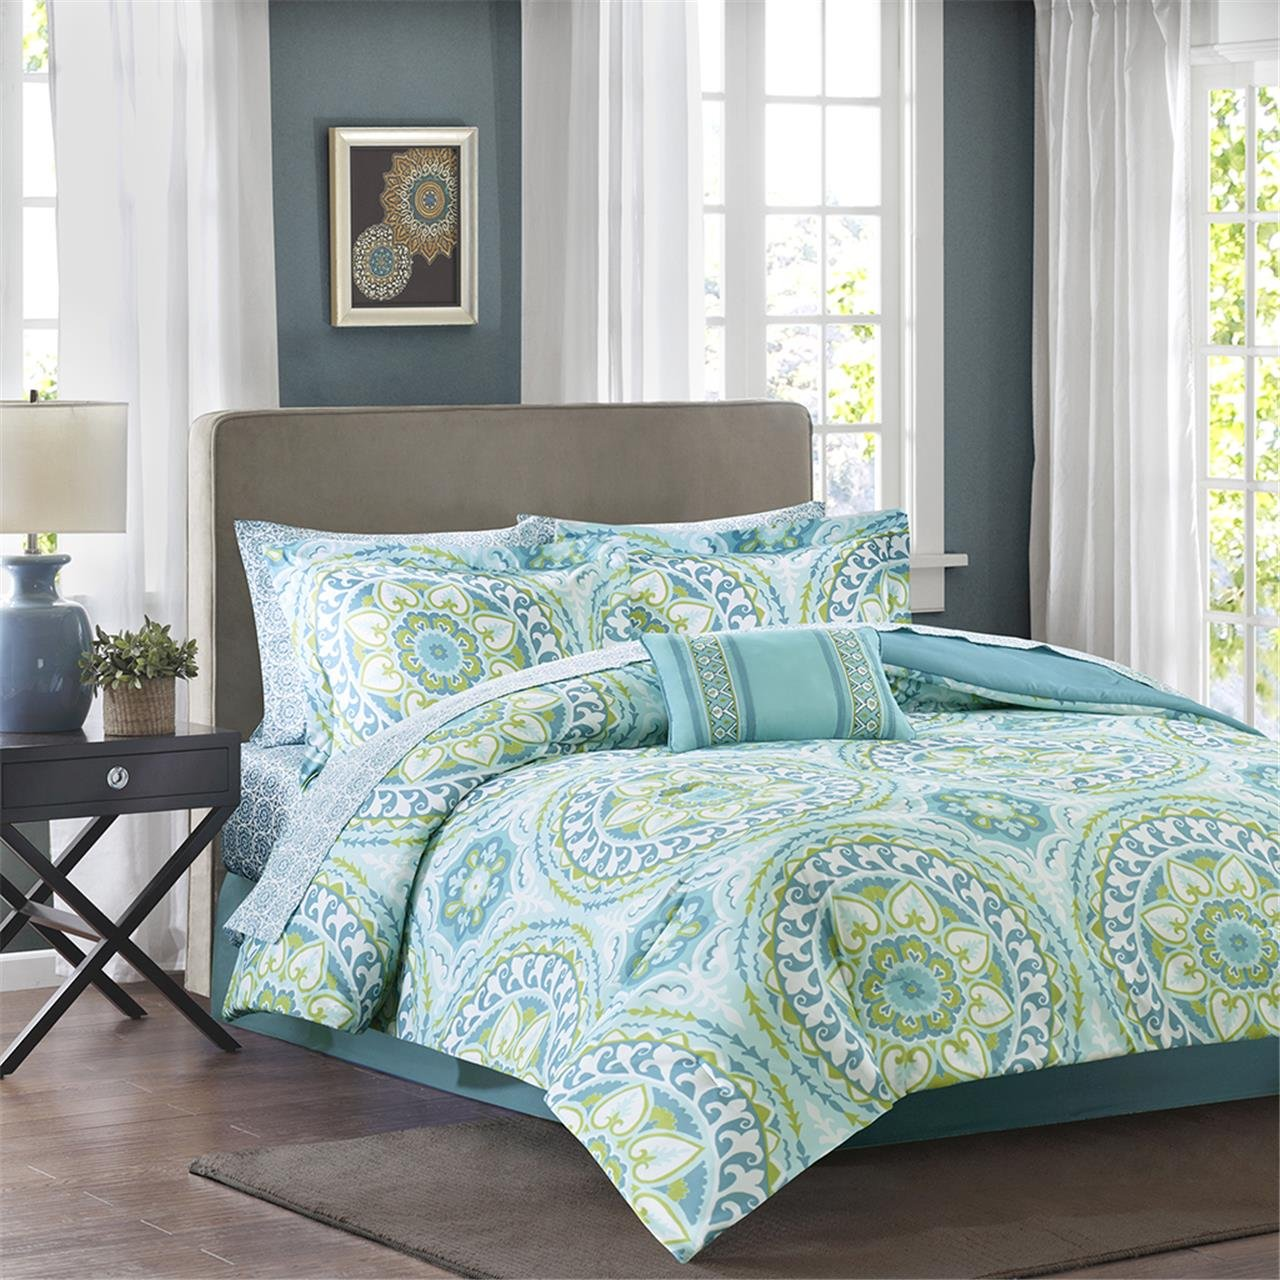 Amazon.com: Madison Park MPE10-147 Essentials Serenity Complete ... : teal quilt set - Adamdwight.com